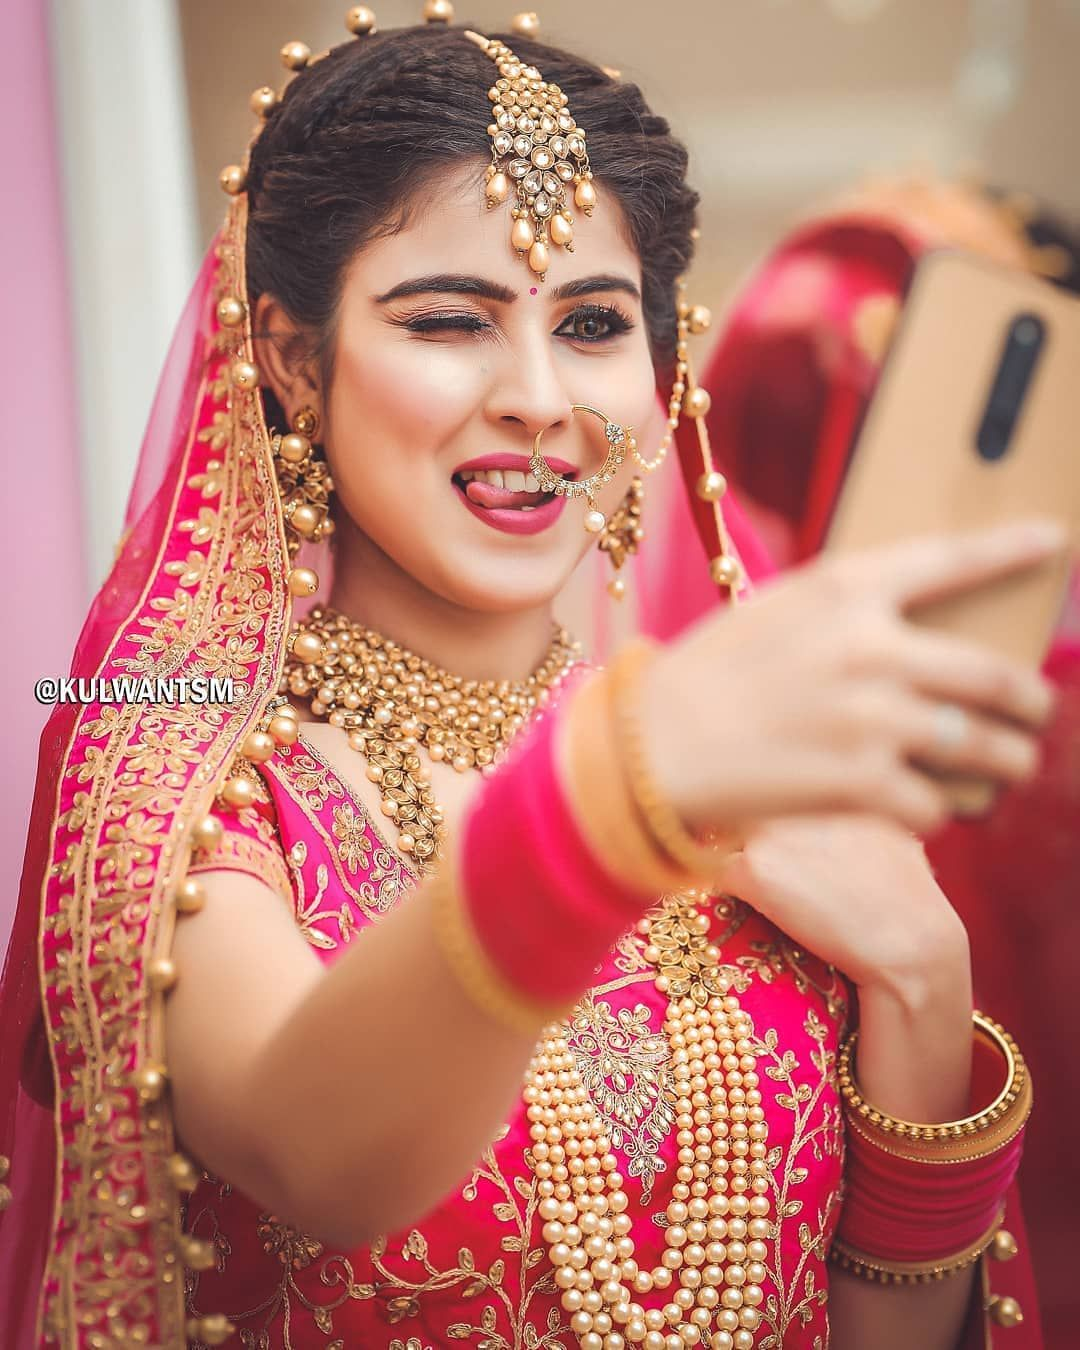 Taking A Selfie Before Taking 7 Vows Indian Wedding Photography Poses Wedding Couples Photography Bridal Photography Poses